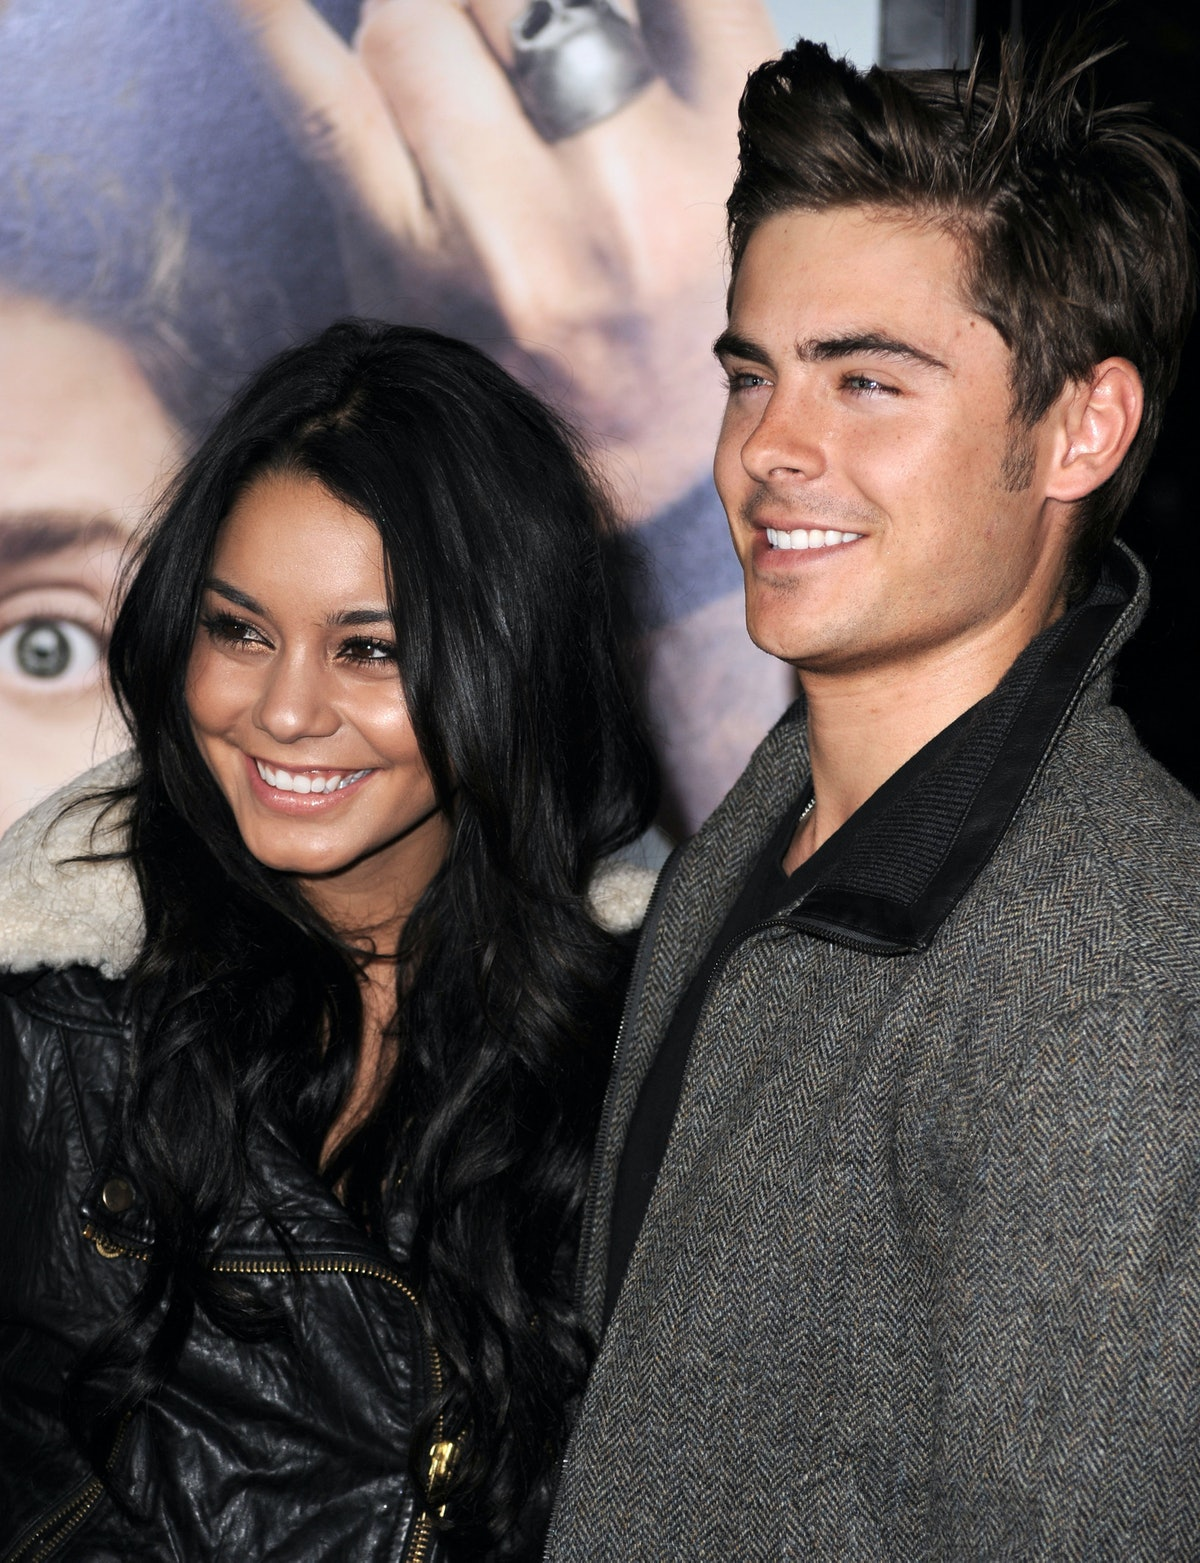 Zac Efron and Vanessa Hudgens hit the red carpet.